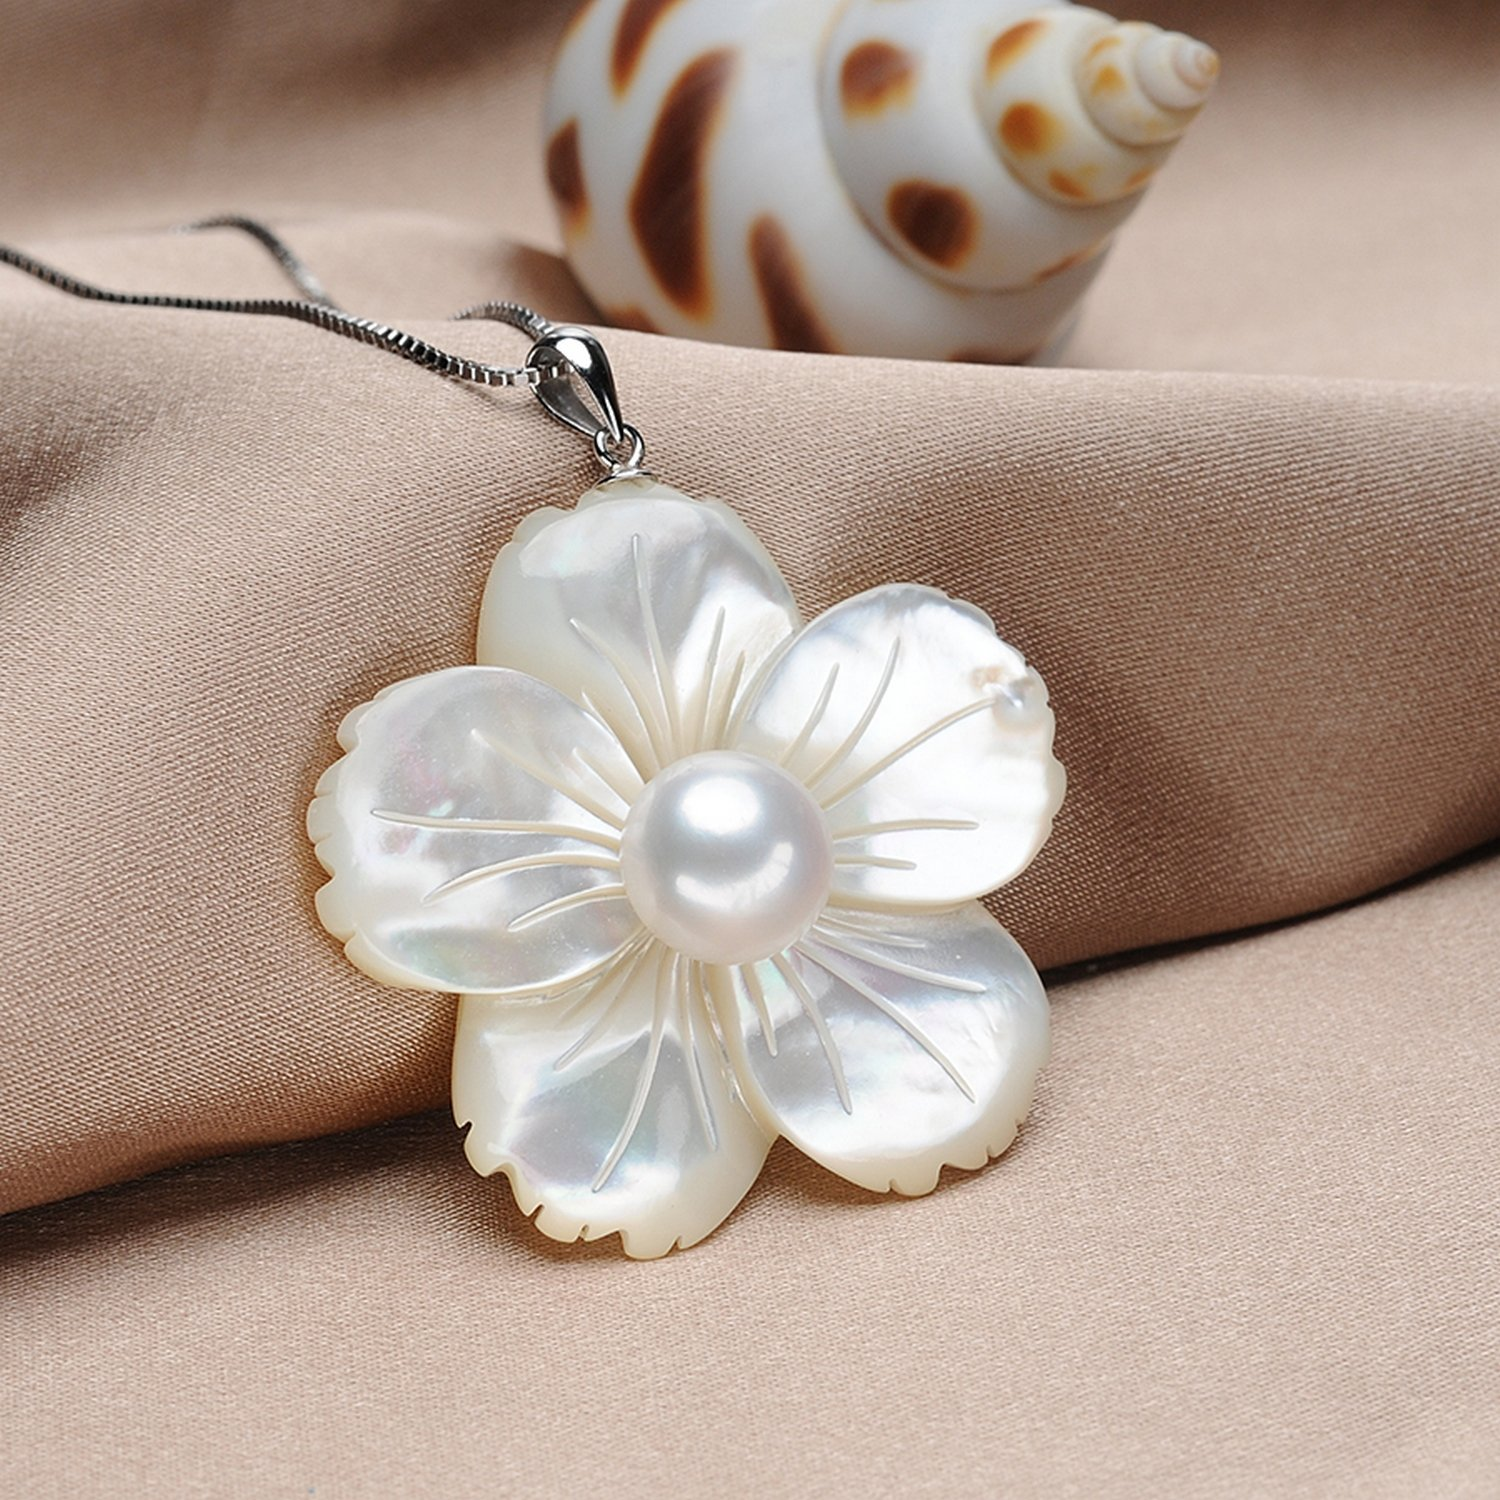 CS-DB Jewelry Silver Shell Carving Pearl Chain Charm Pendants Necklaces